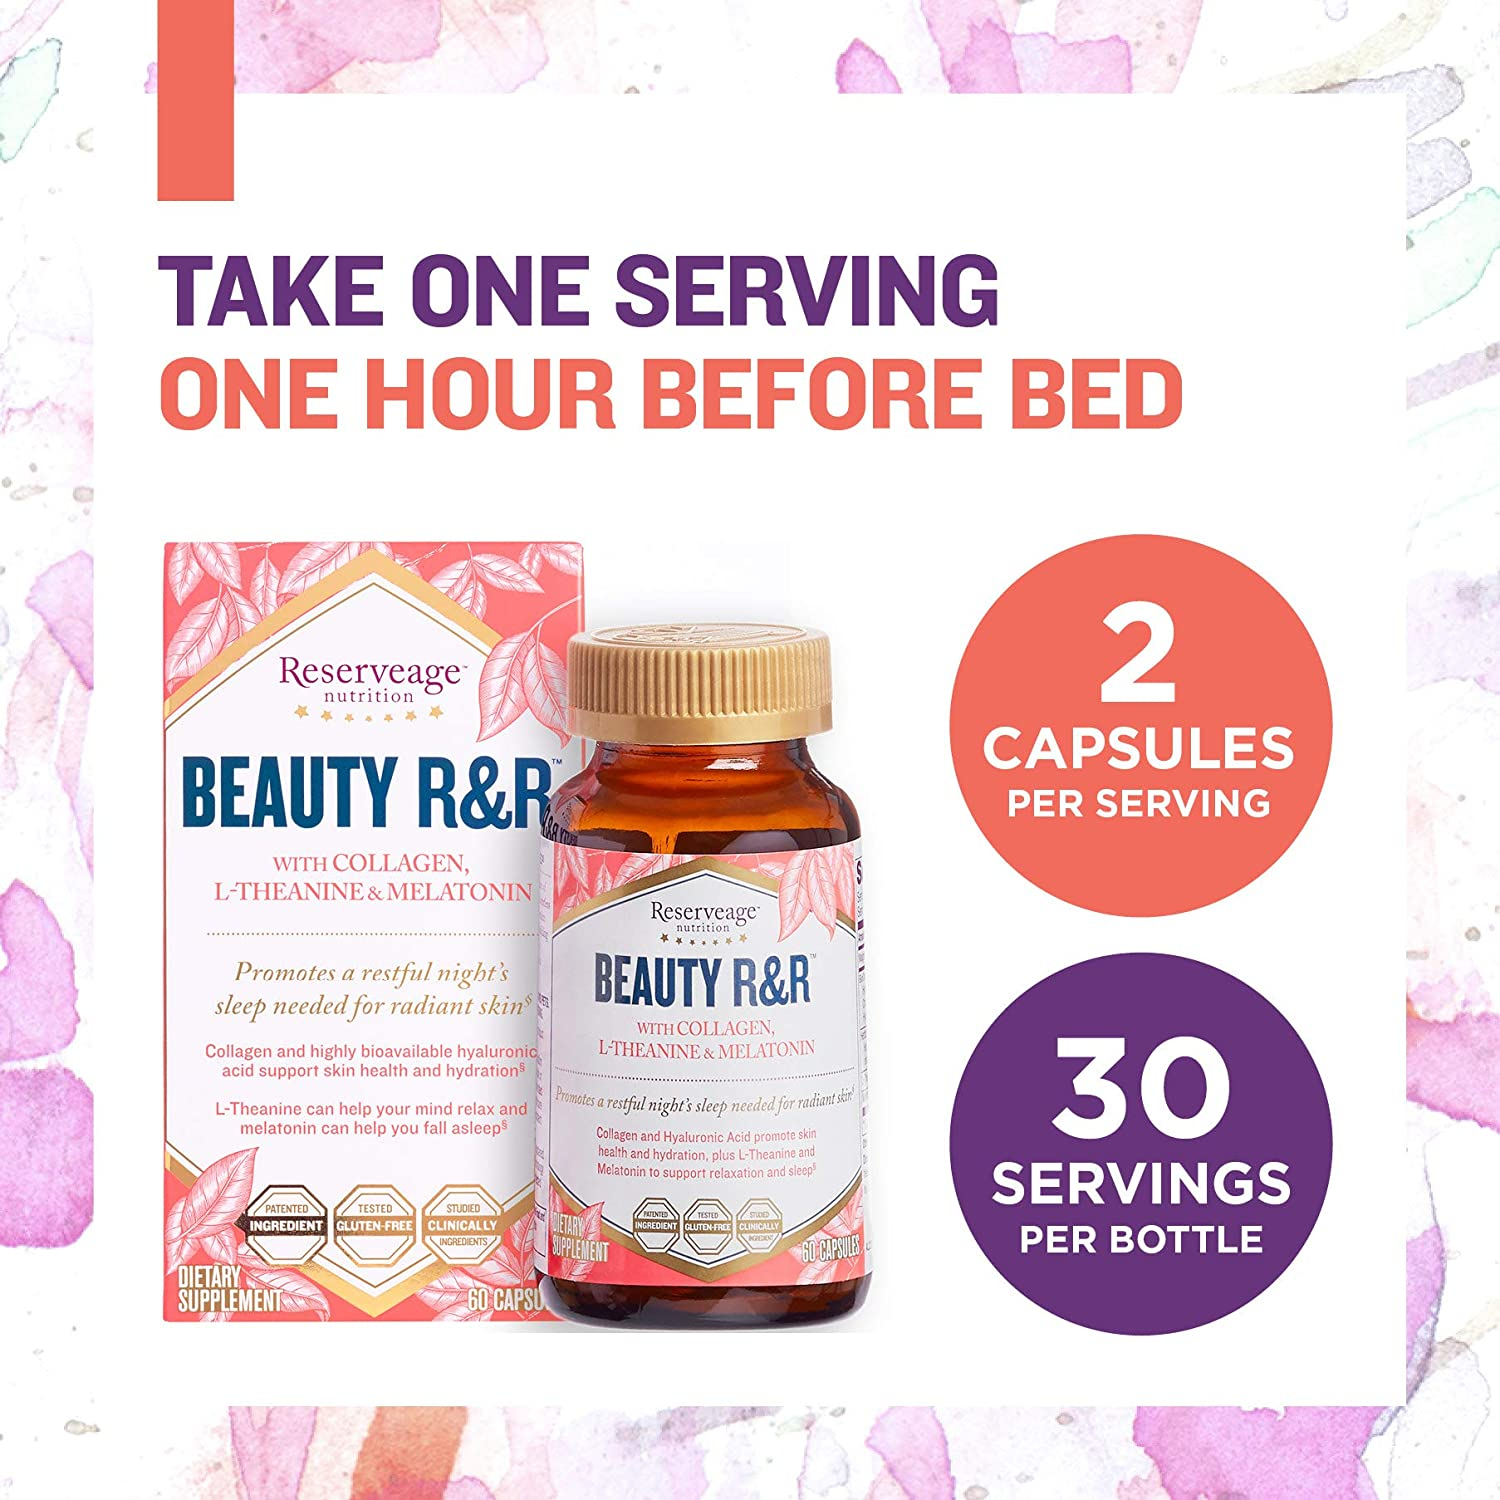 Amazon.com: Reserveage - Beauty R&R, Helps Relax the Mind for Restful Sleep and Supports Radiant, Firm and Youthful Skin with Collagen, Melatonin and ...